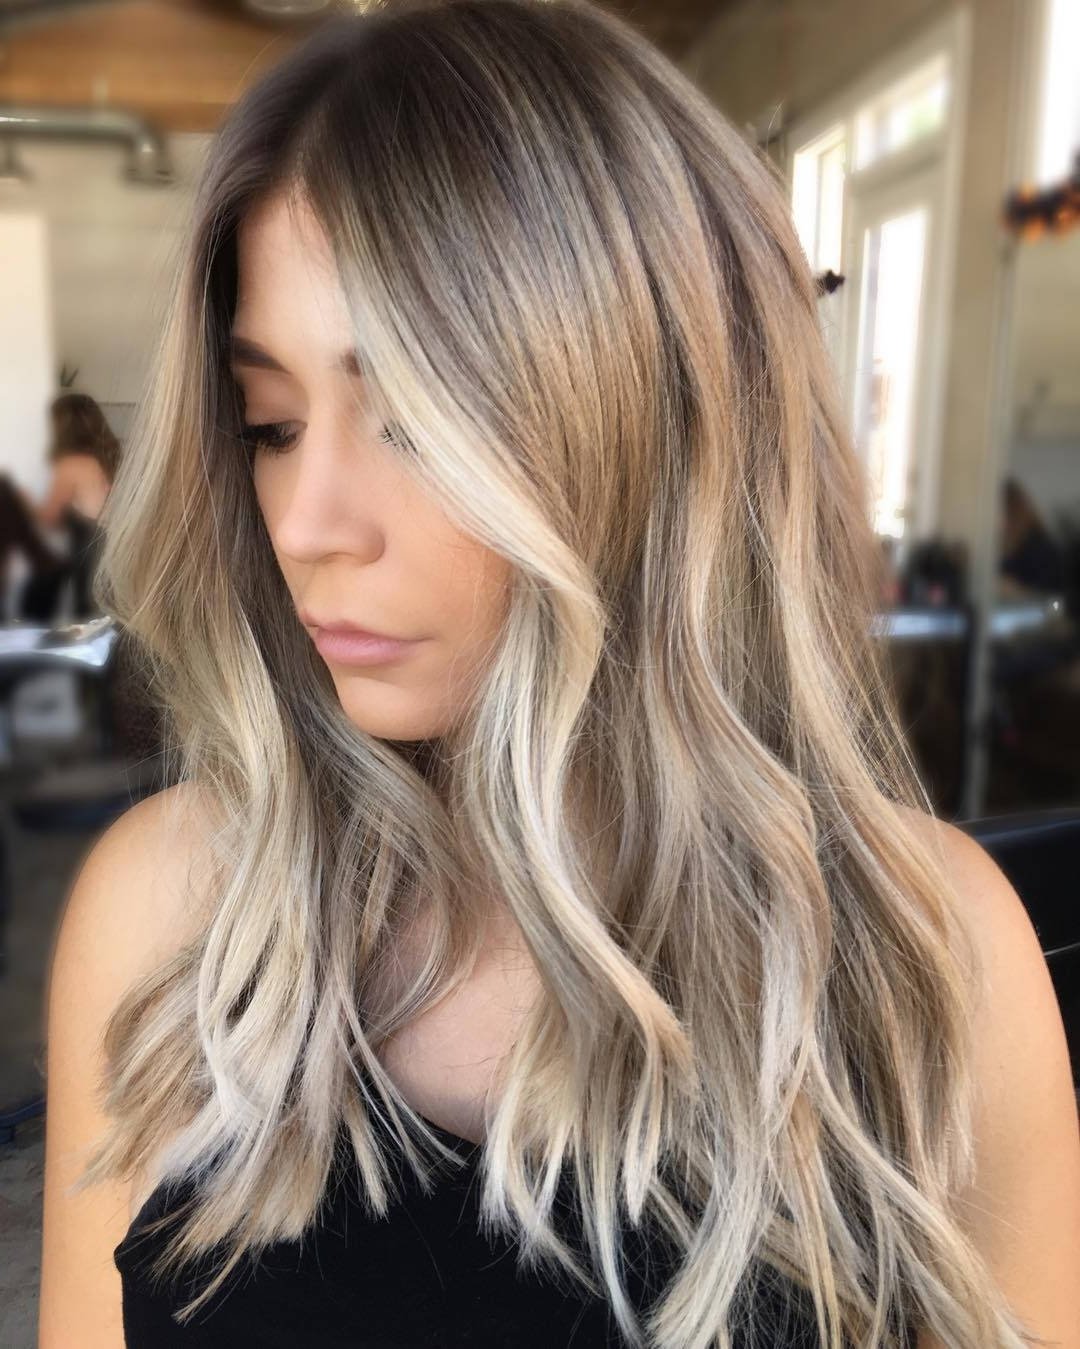 10 Ash Blonde Hairstyles For All Skin Tones 2021 40+ Awesome Ash Blonde Hairstyles Medium Hair